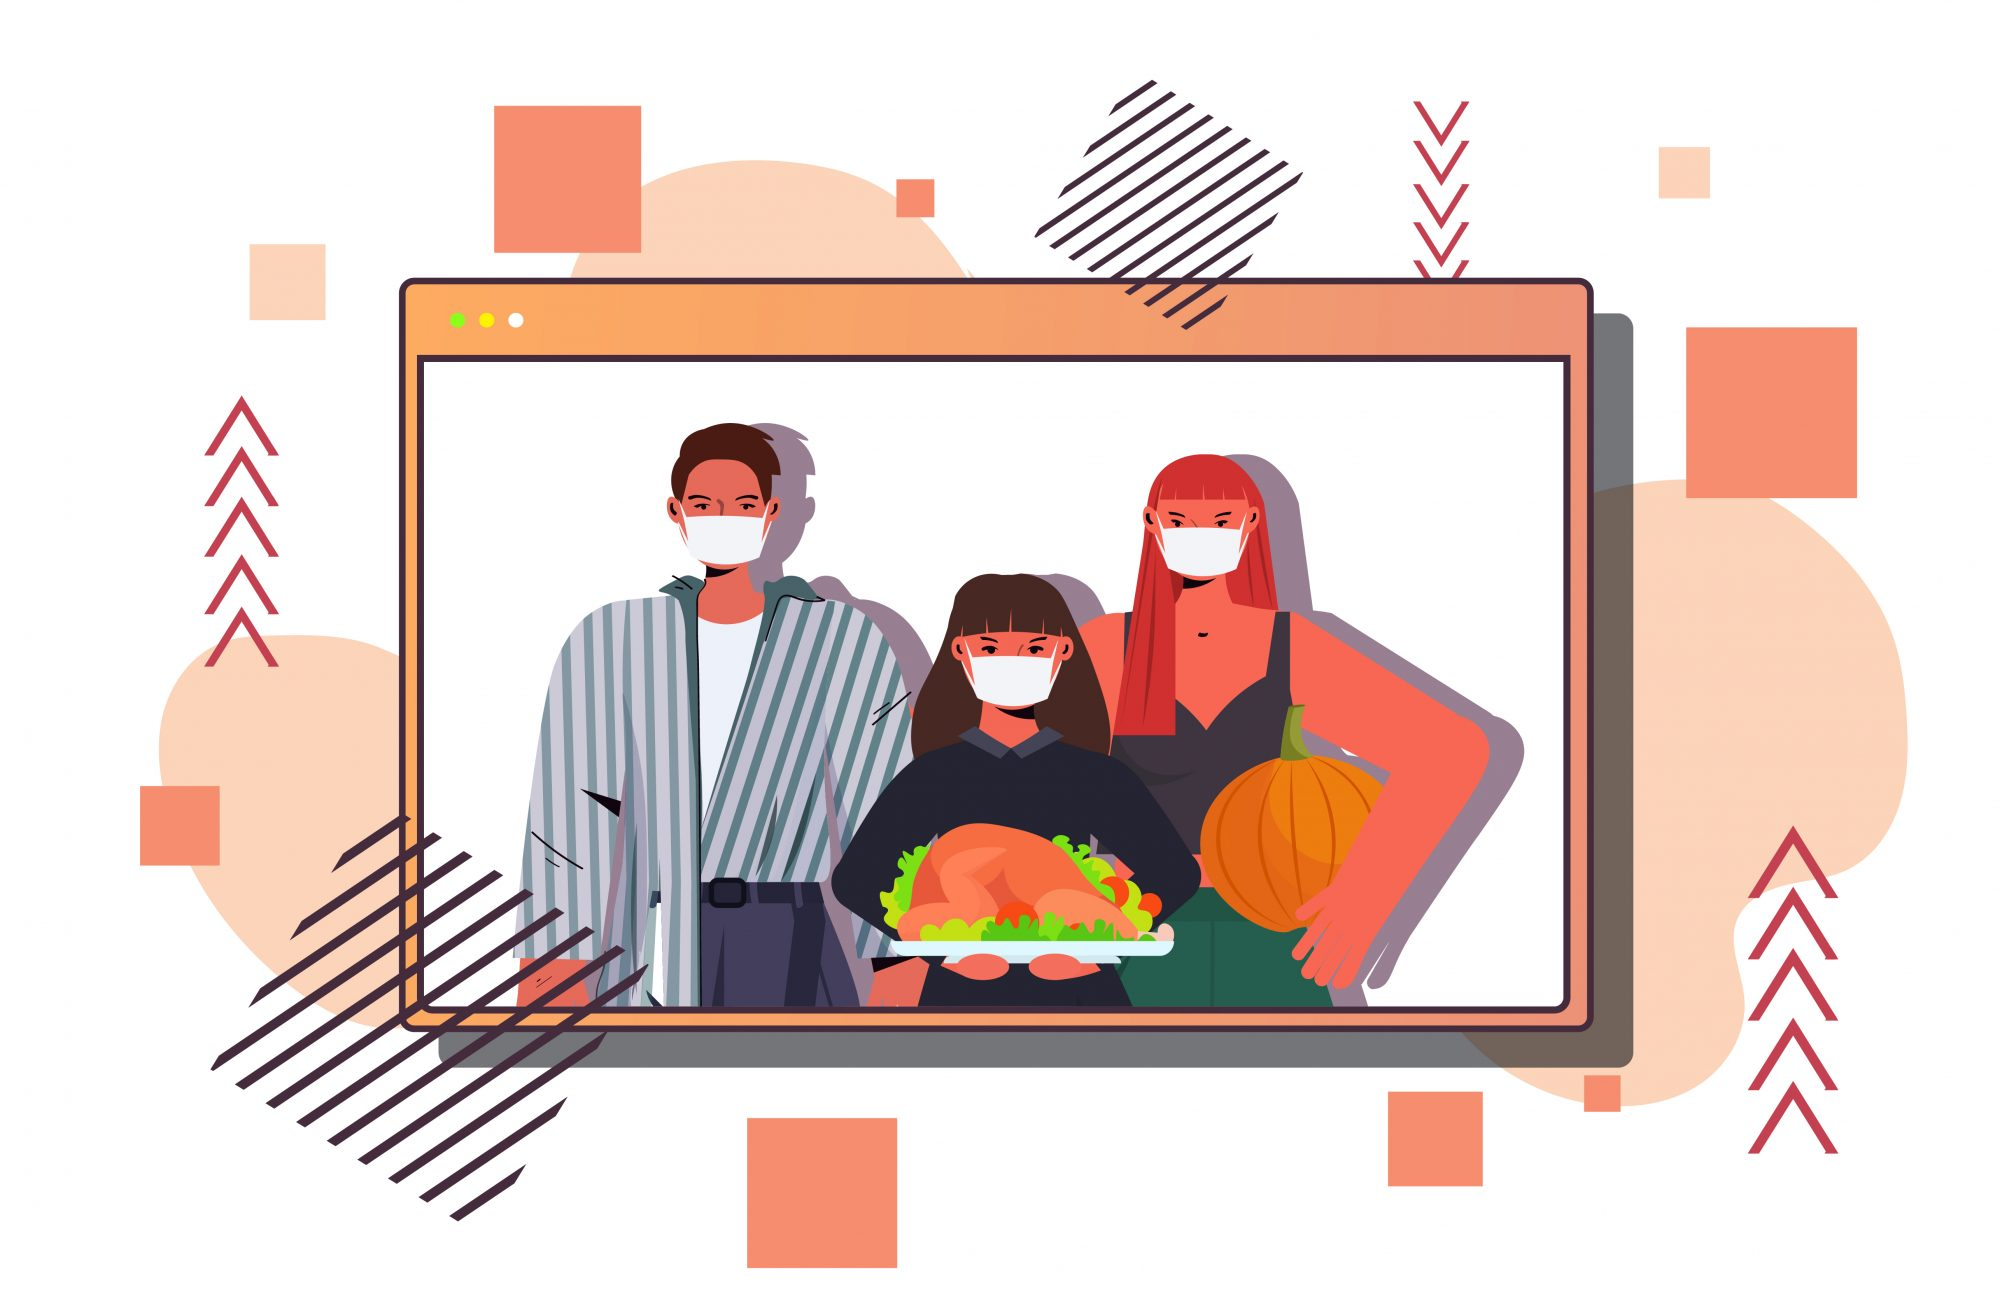 Cdc Recommends Virtual Thanksgiving To Keep Covid 19 Risk Low Allrecipes